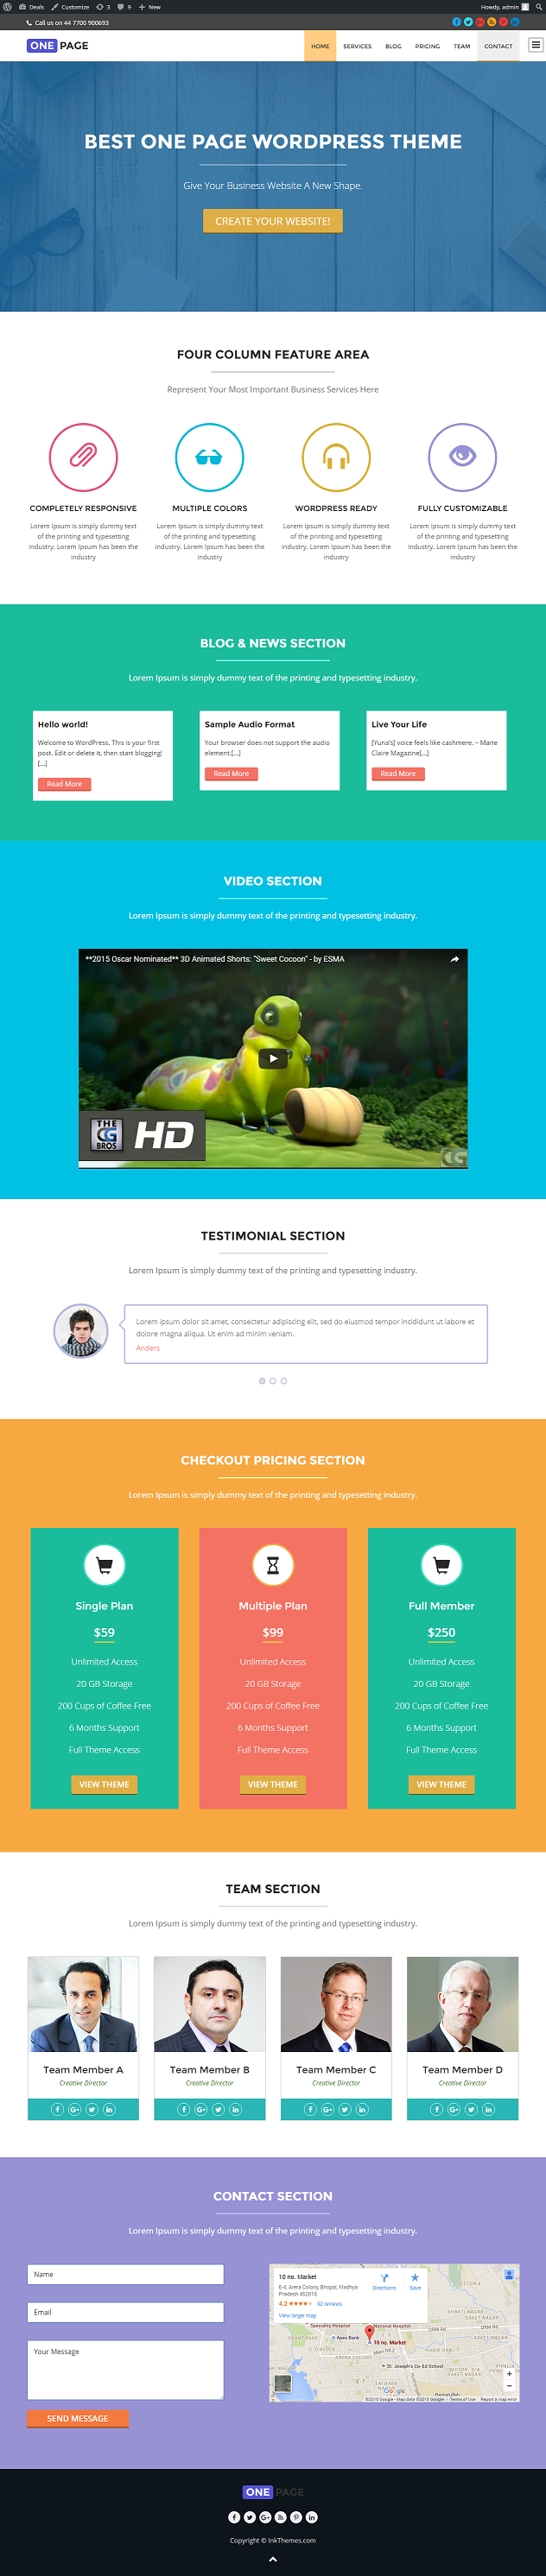 free-aerofit-wordpress-theme